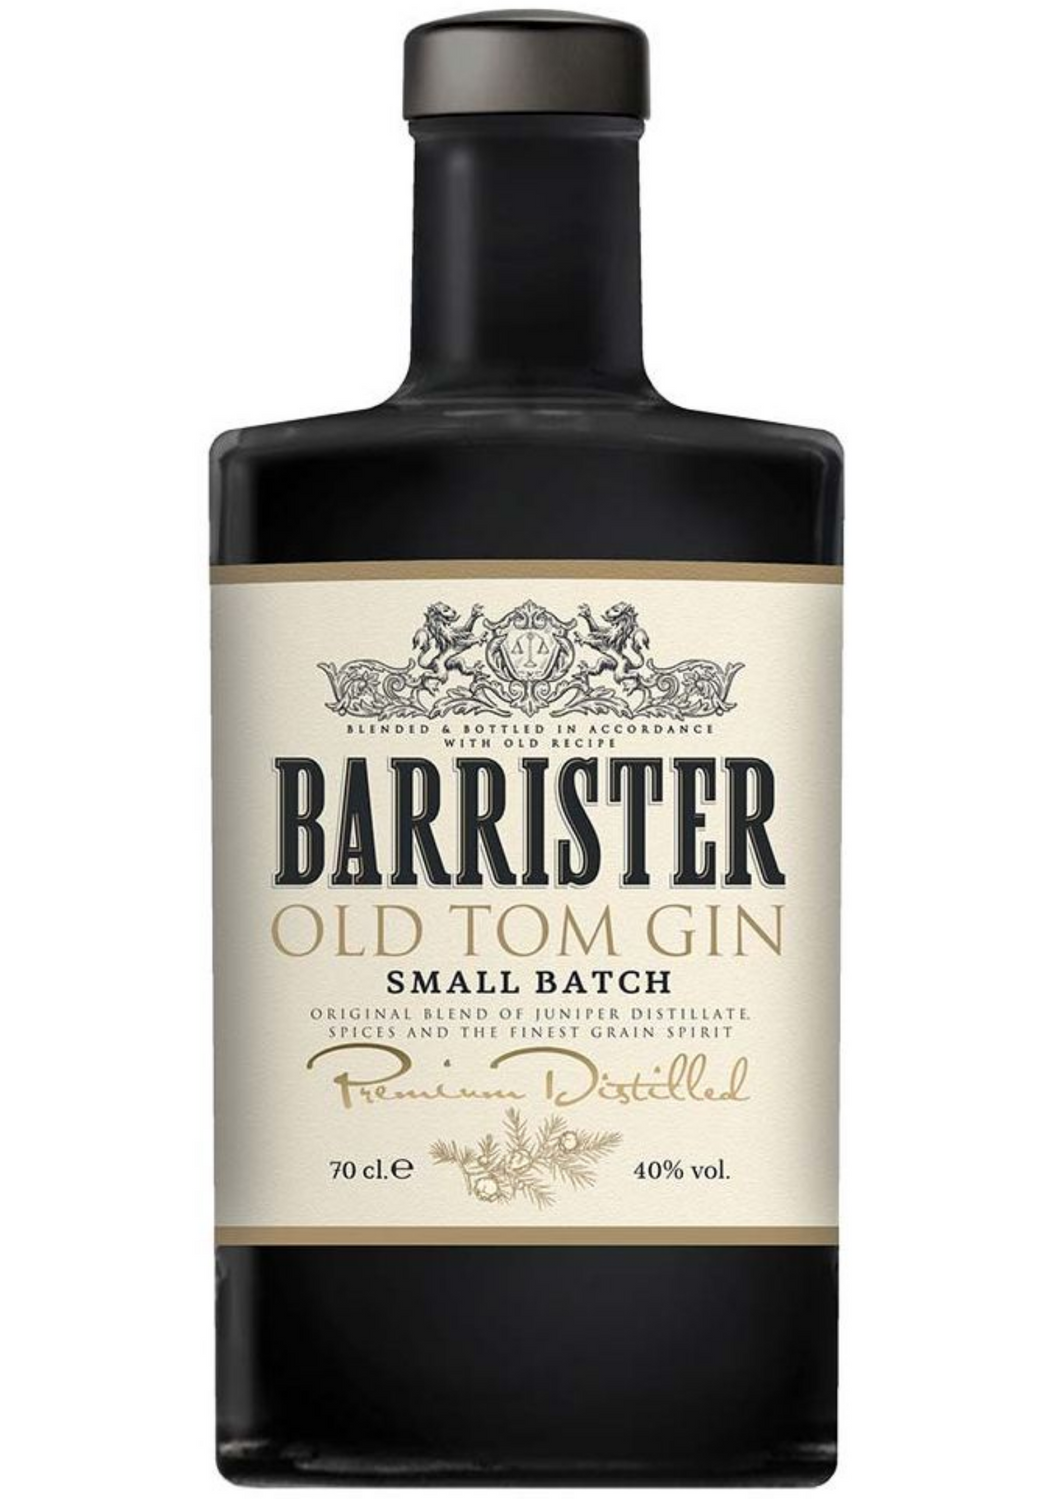 Barrister Old Tom Gin - Vine0nline